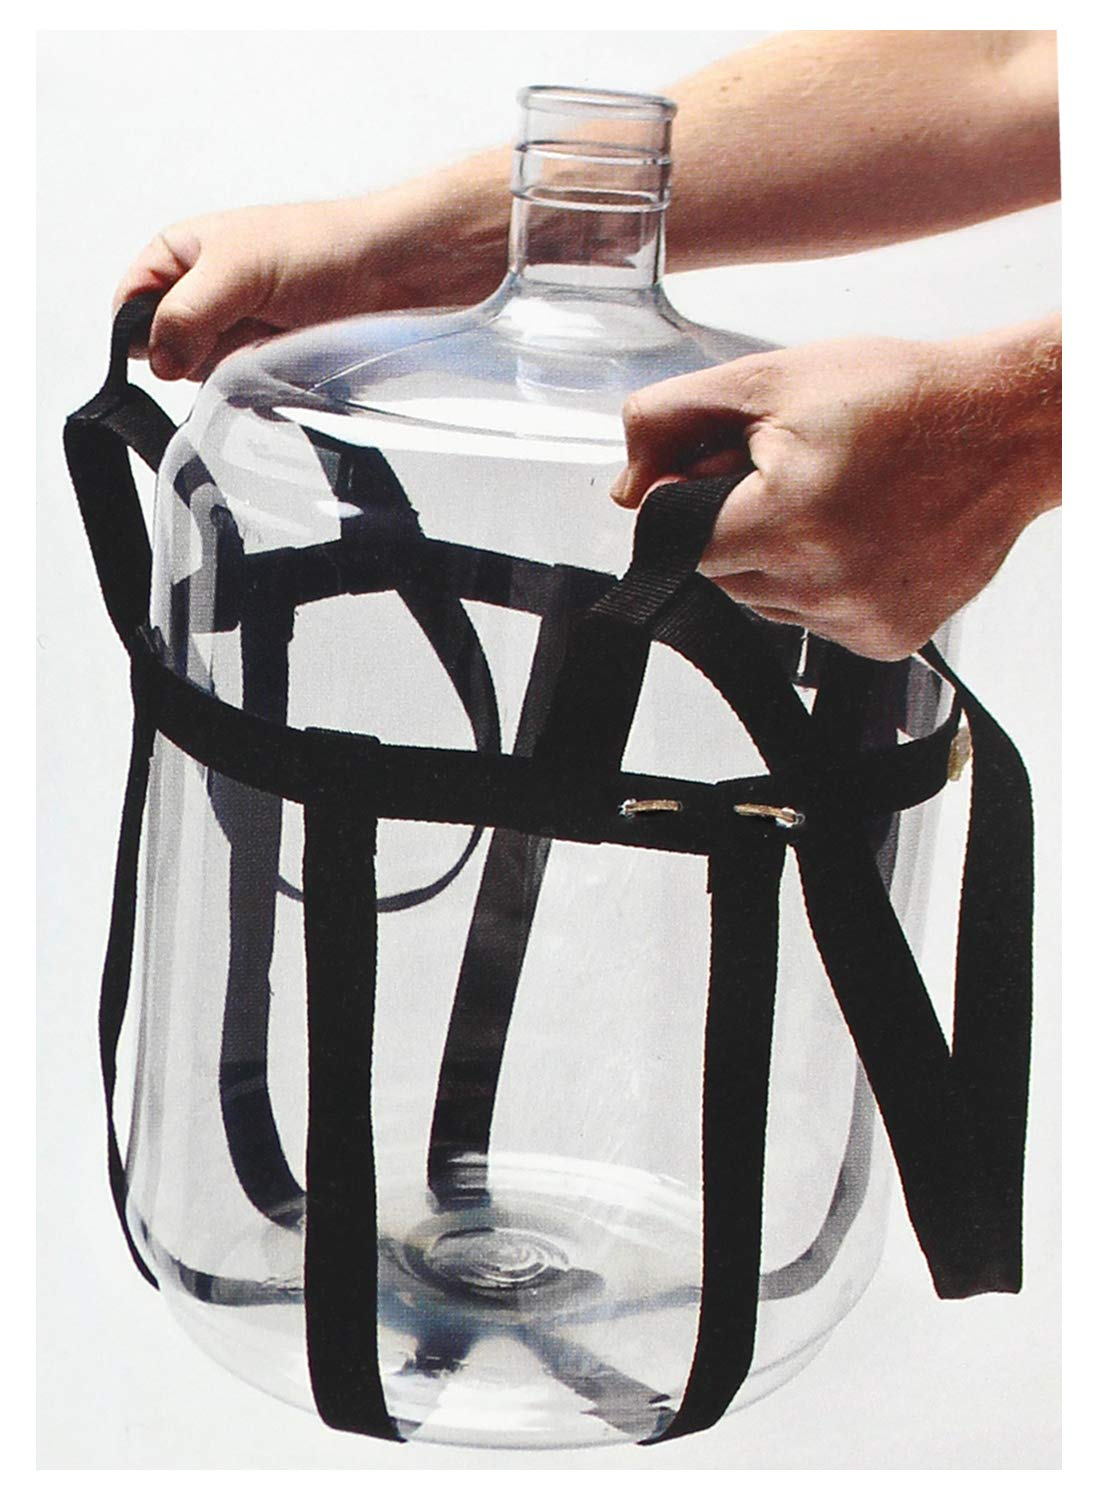 The Carboy Carrier by The Vintage Shop